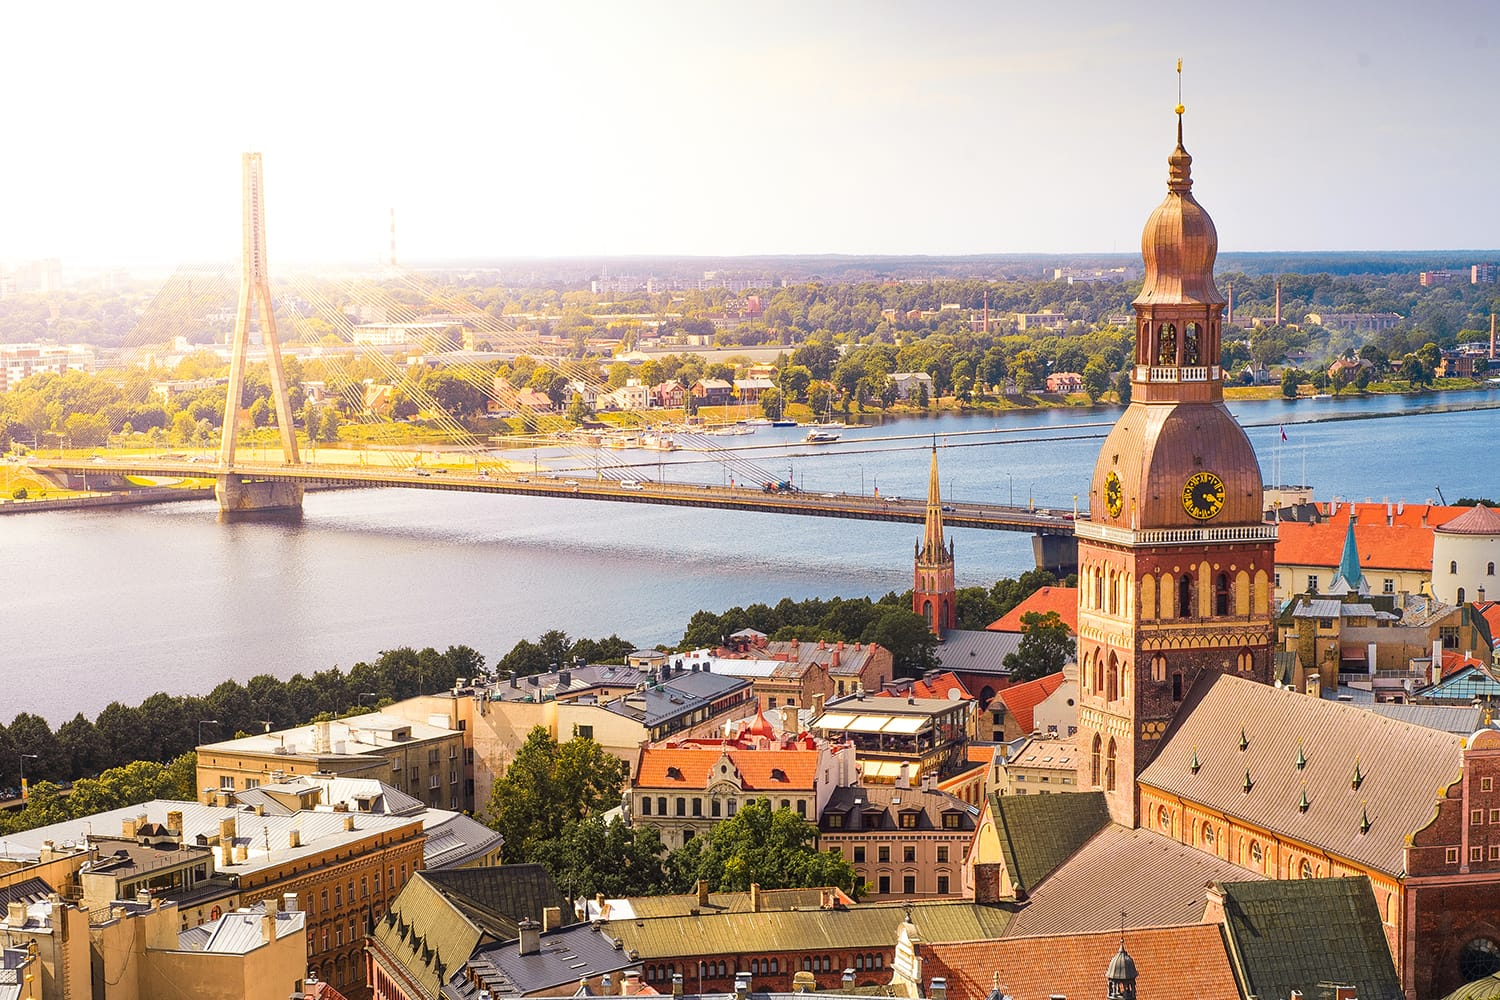 View of Old Riga from the St. Peter's Church, Riga, Latvia